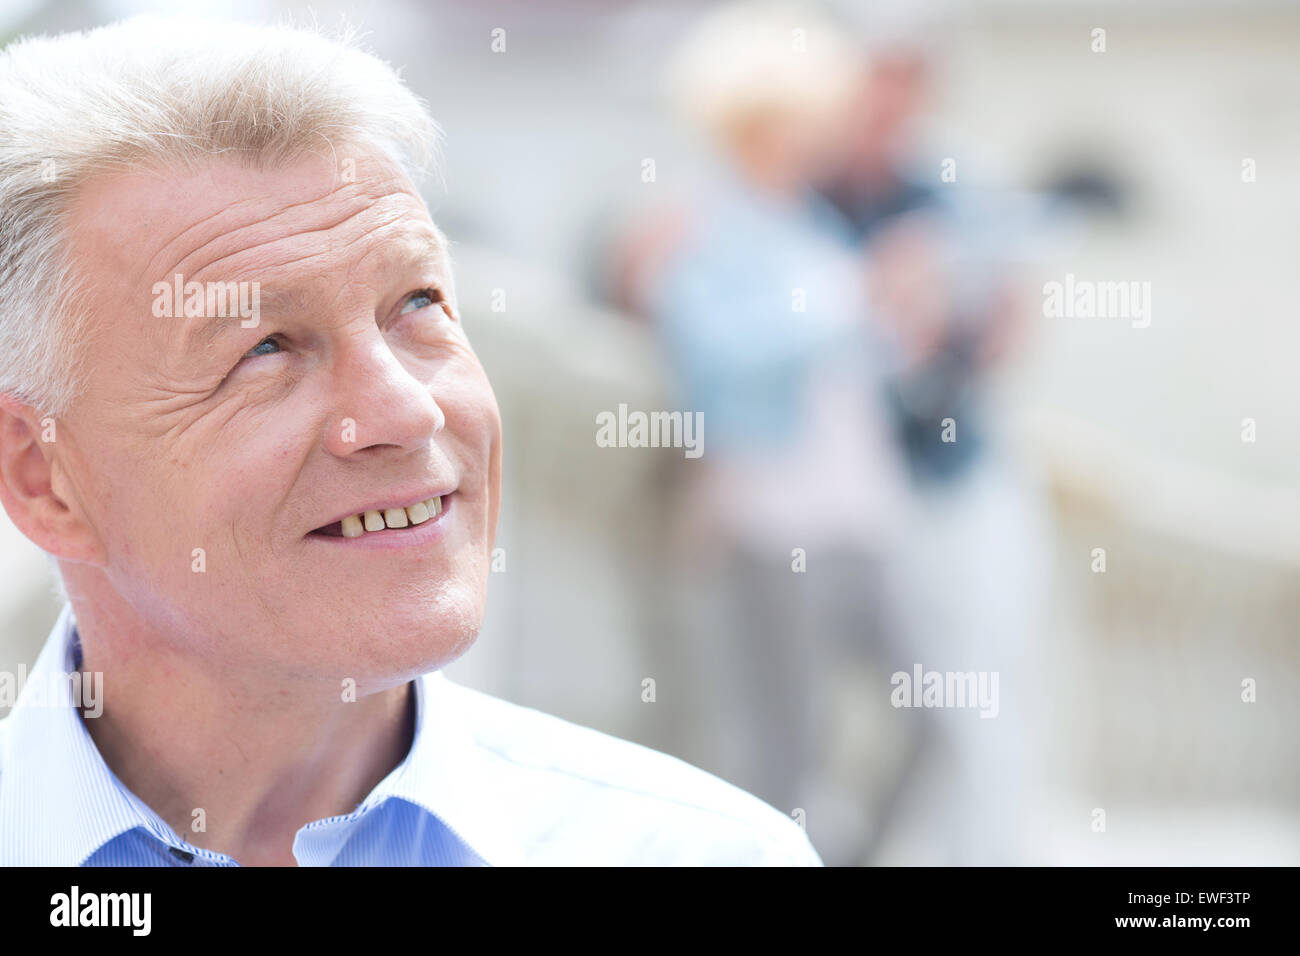 Close-up of smiling man looking away outdoors - Stock Image